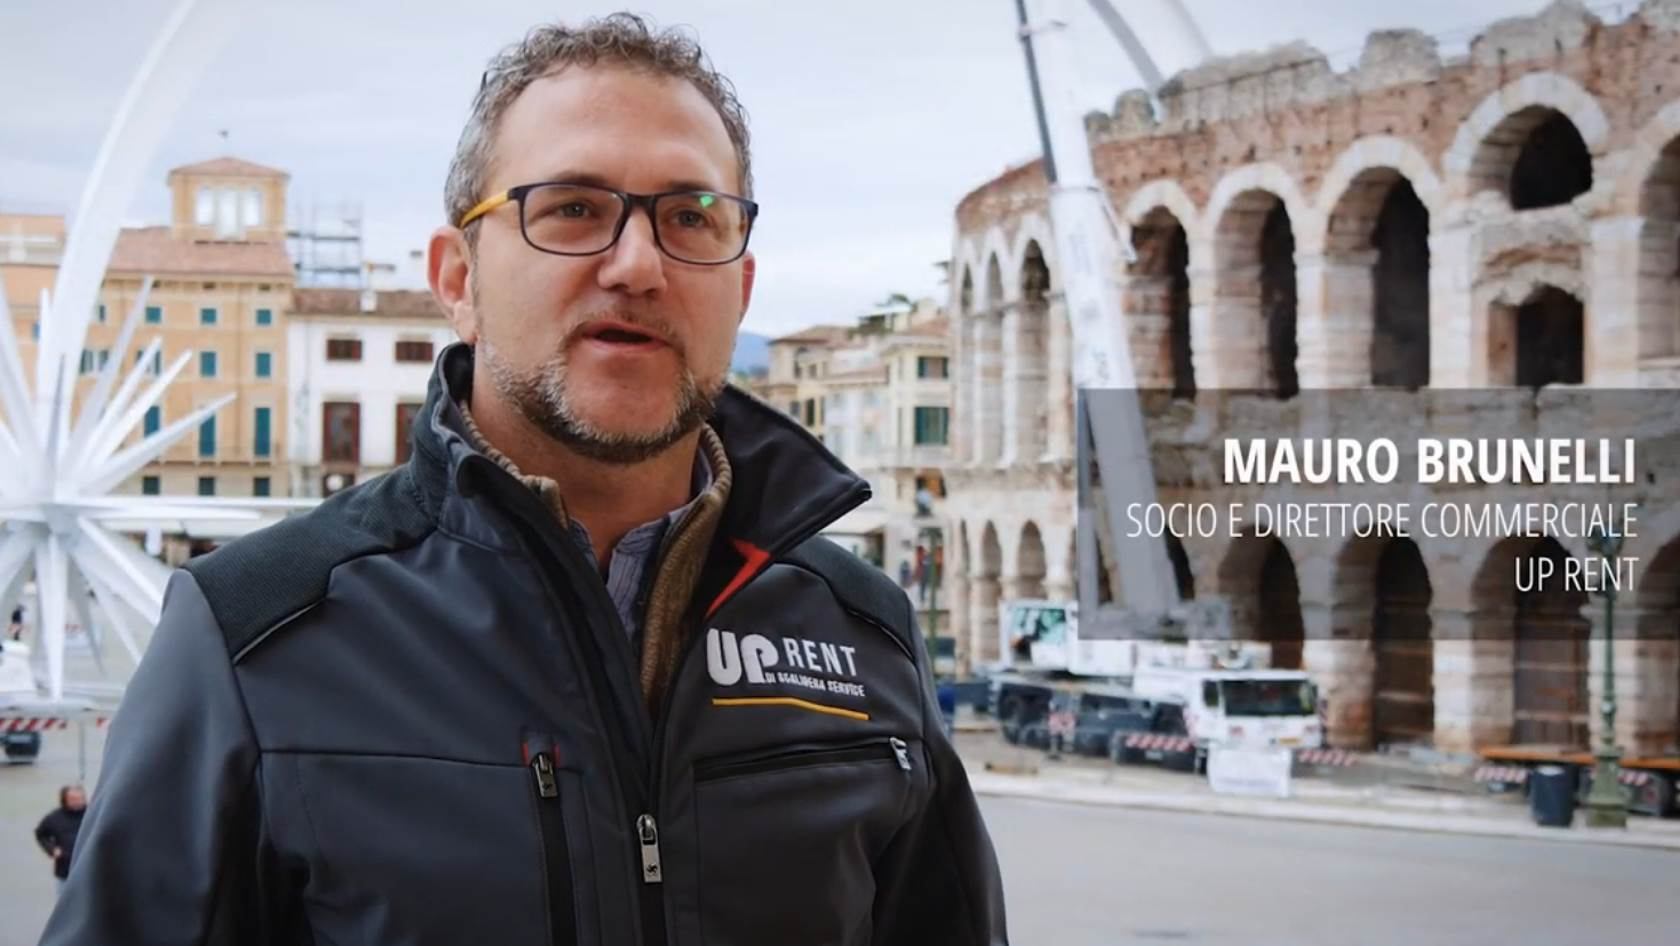 UpRent <br>Installation of the Christmas Star Arena di Verona